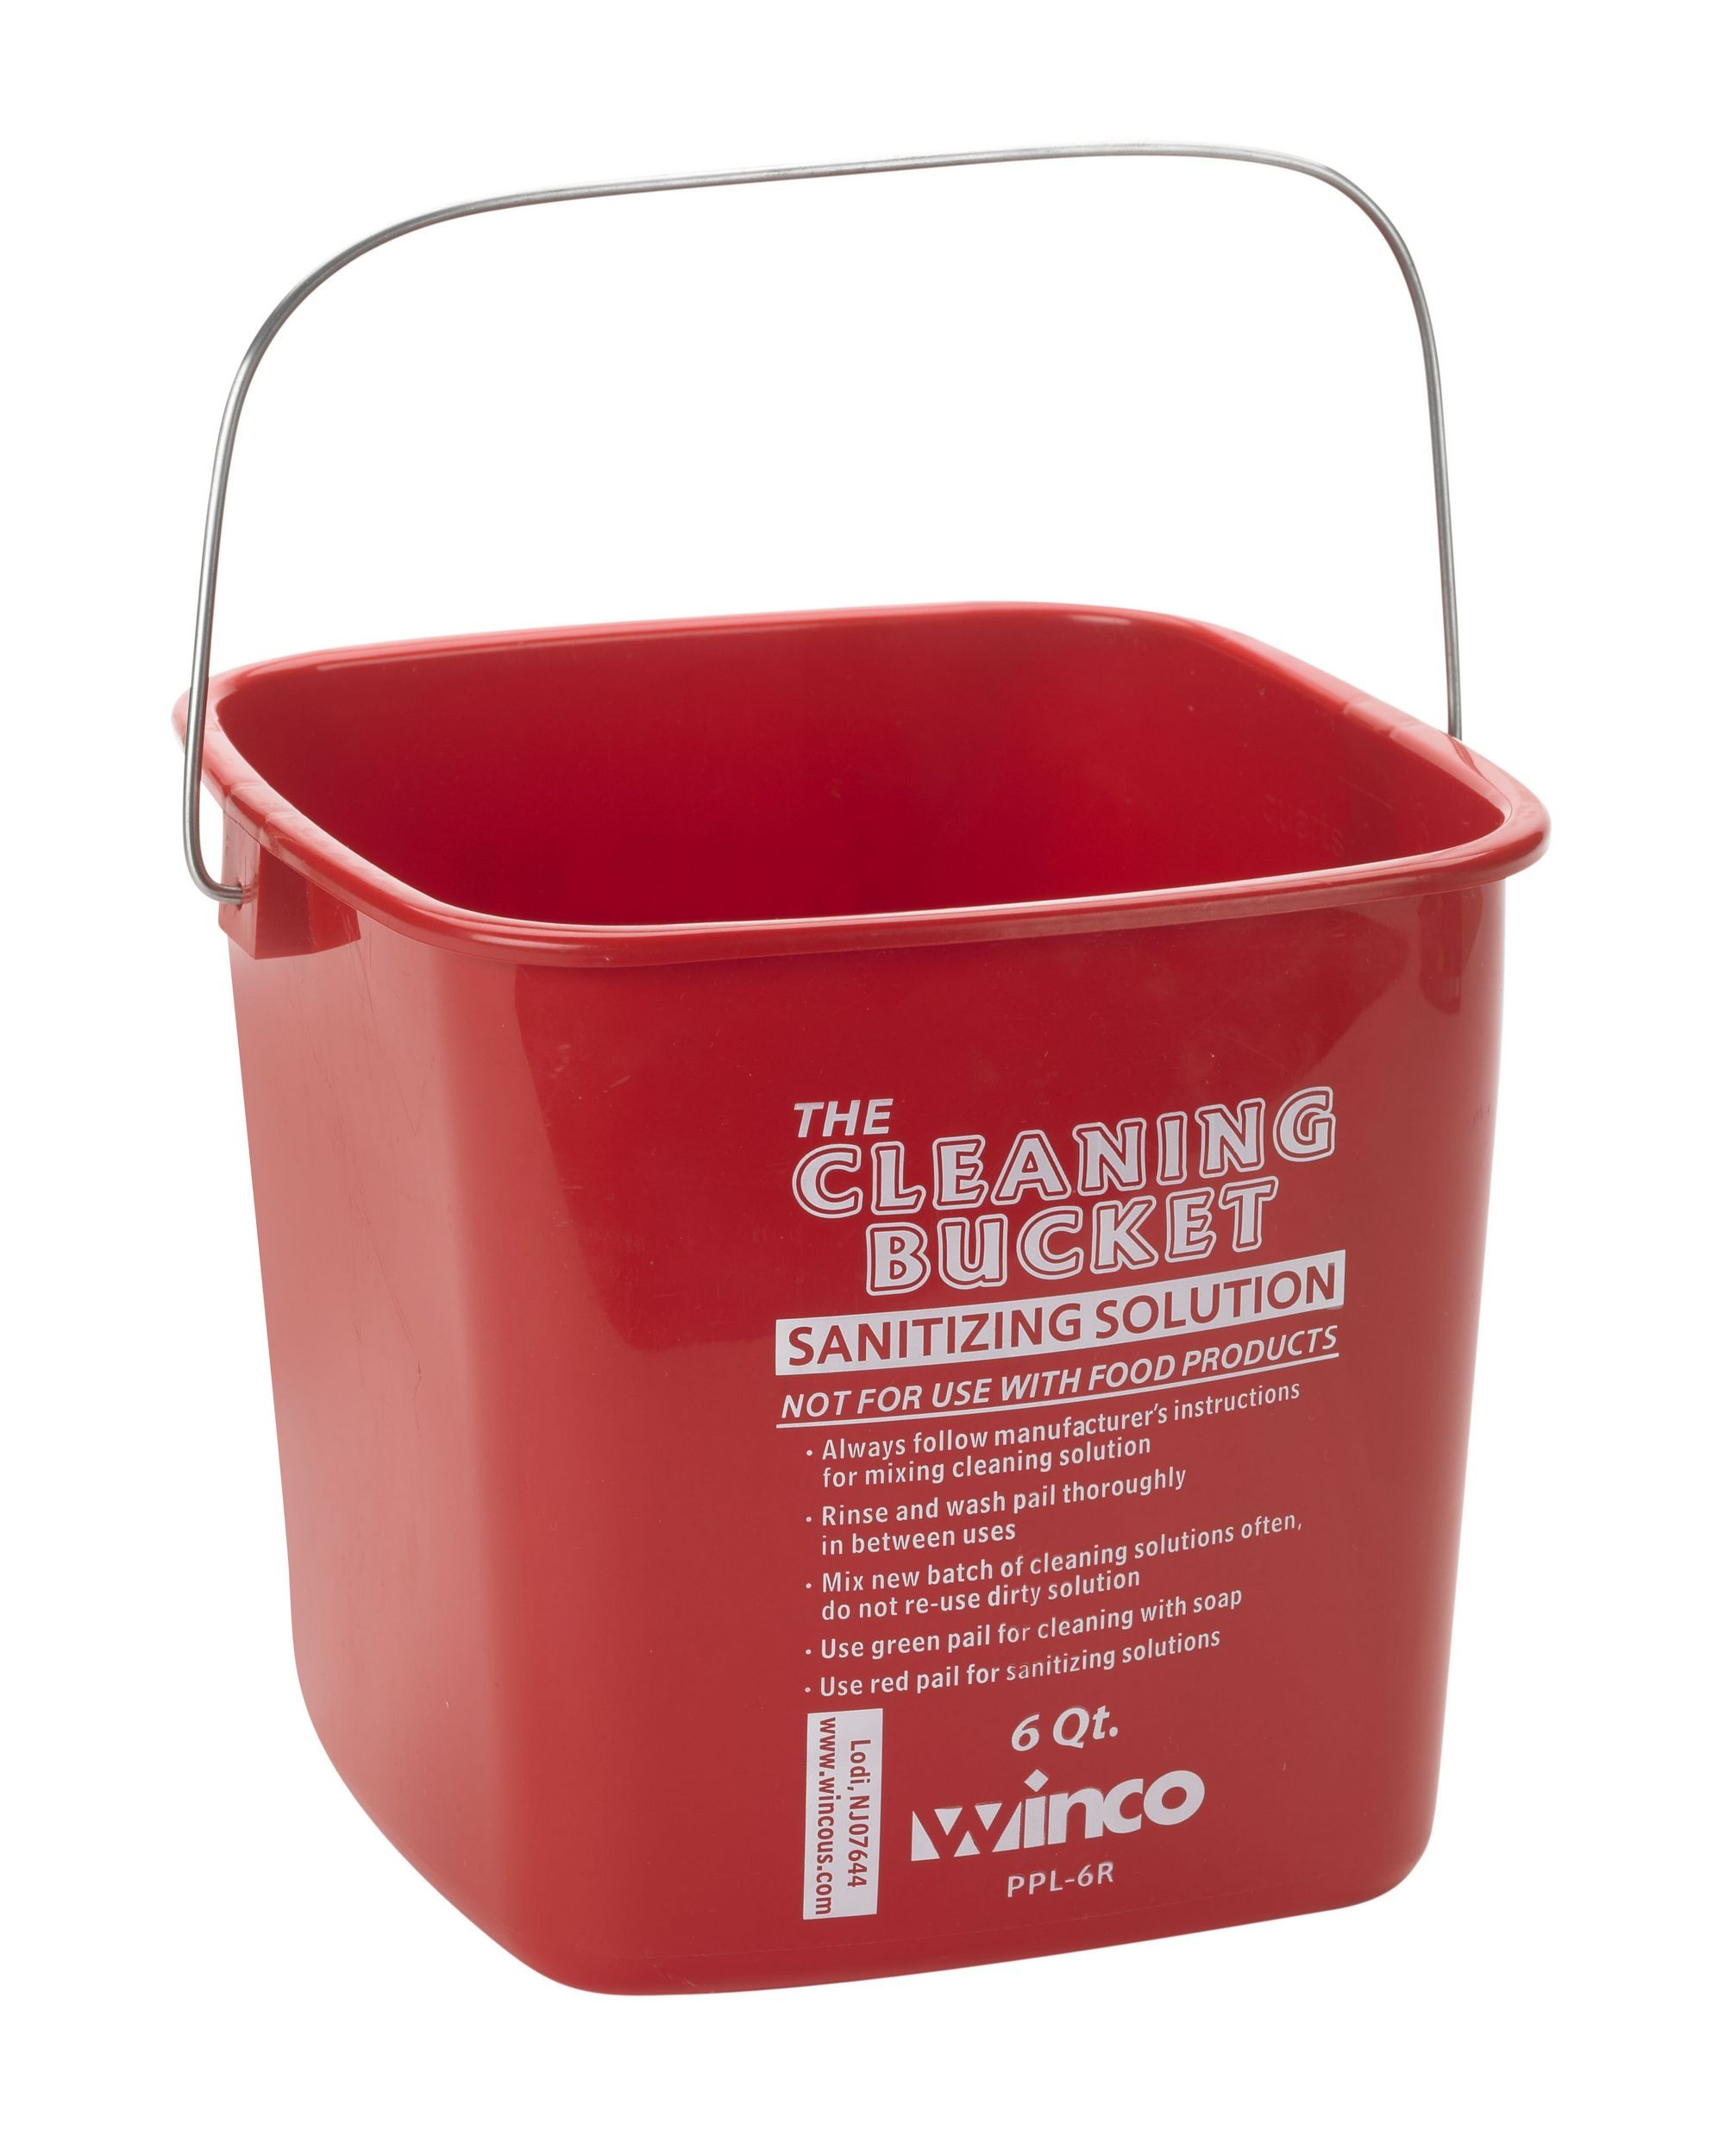 Winco PPL-6R Cleaning Bucket 6 Qt. Red Sanitizing Solution